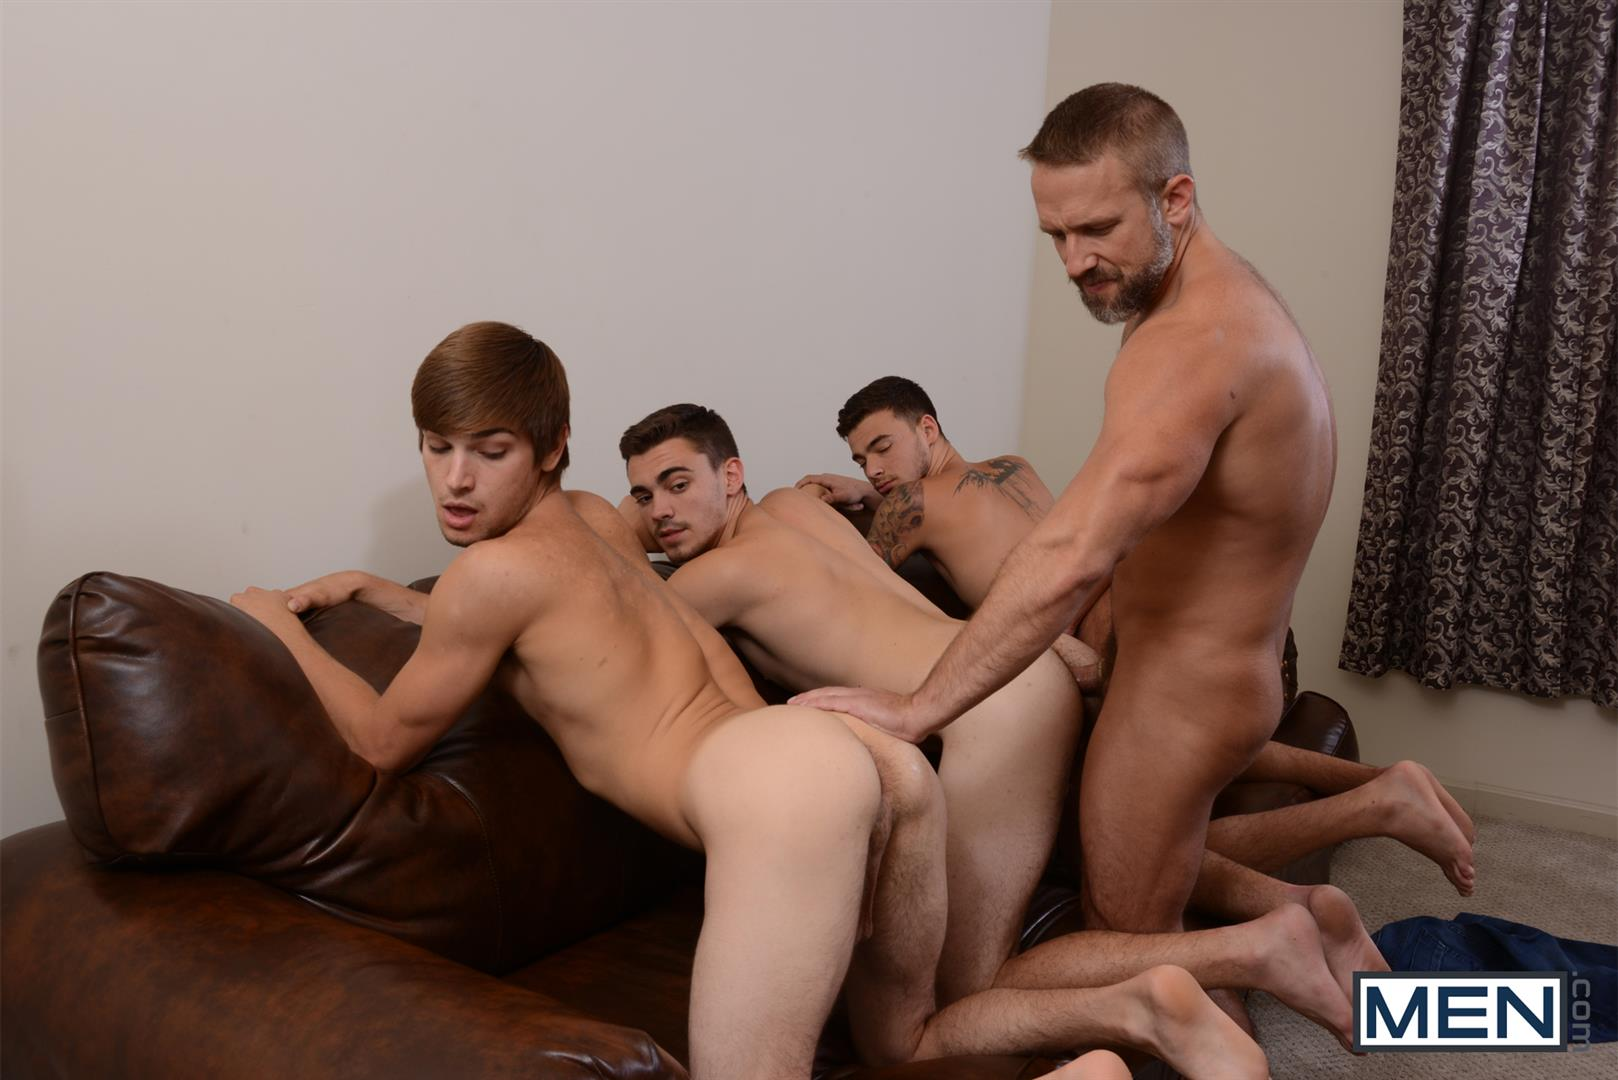 Men-Jizz-Orgy-Asher-Hawk-and-Dirk-Caber-and-Johnny-Rapid-and-Trevor-Spade-Triple-Penetrated-In-the-Ass-Amateur-Gay-Porn-13 Stepfather Dirk Caber Gets TRIPLE Penetrated By His Stepsons